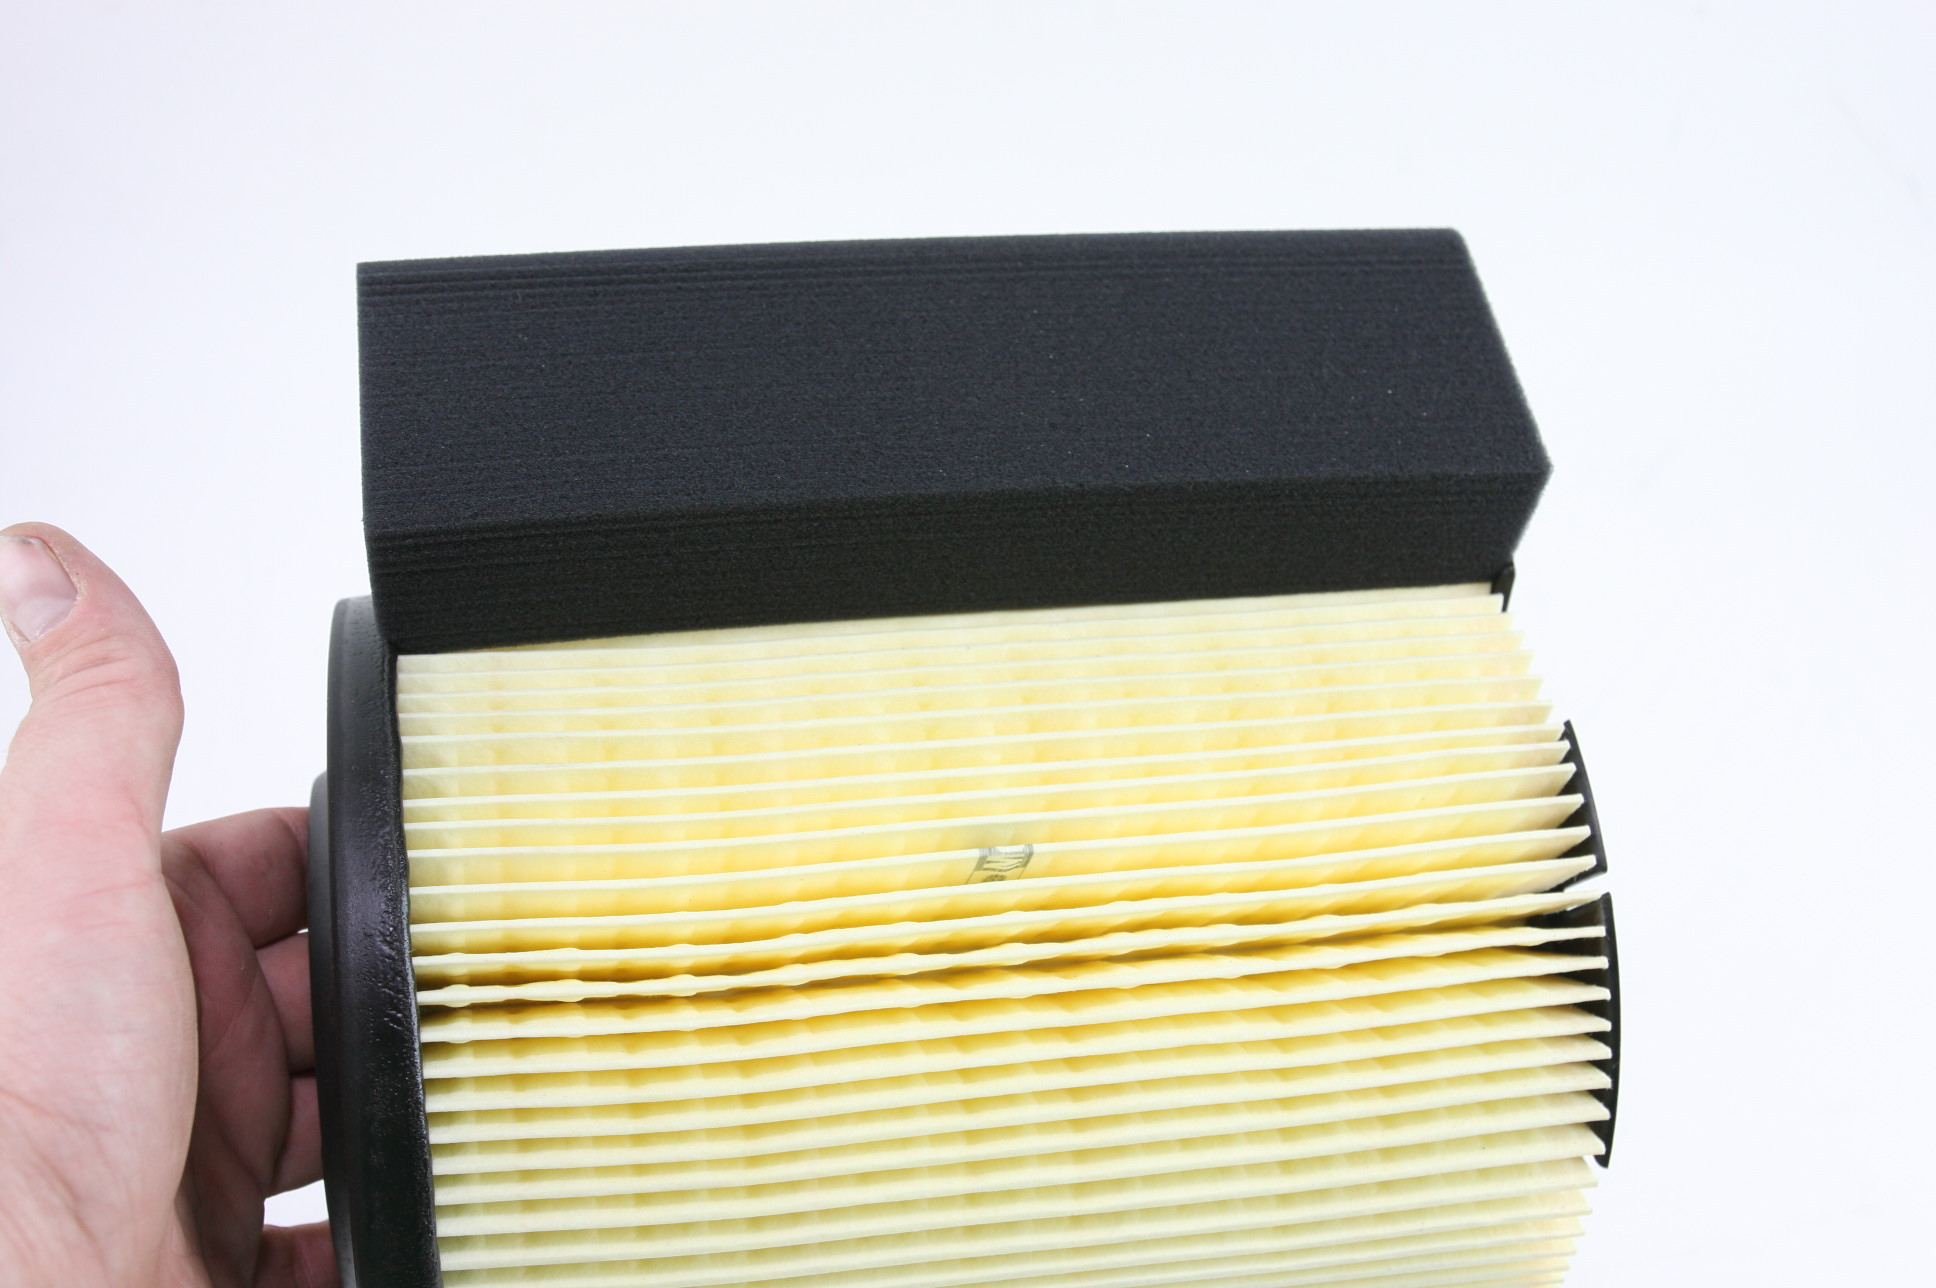 New OEM 3 Pack Motorcraft FA1927 Ford HC3Z9601A Powerstroke Diesel Air Filter - image 7